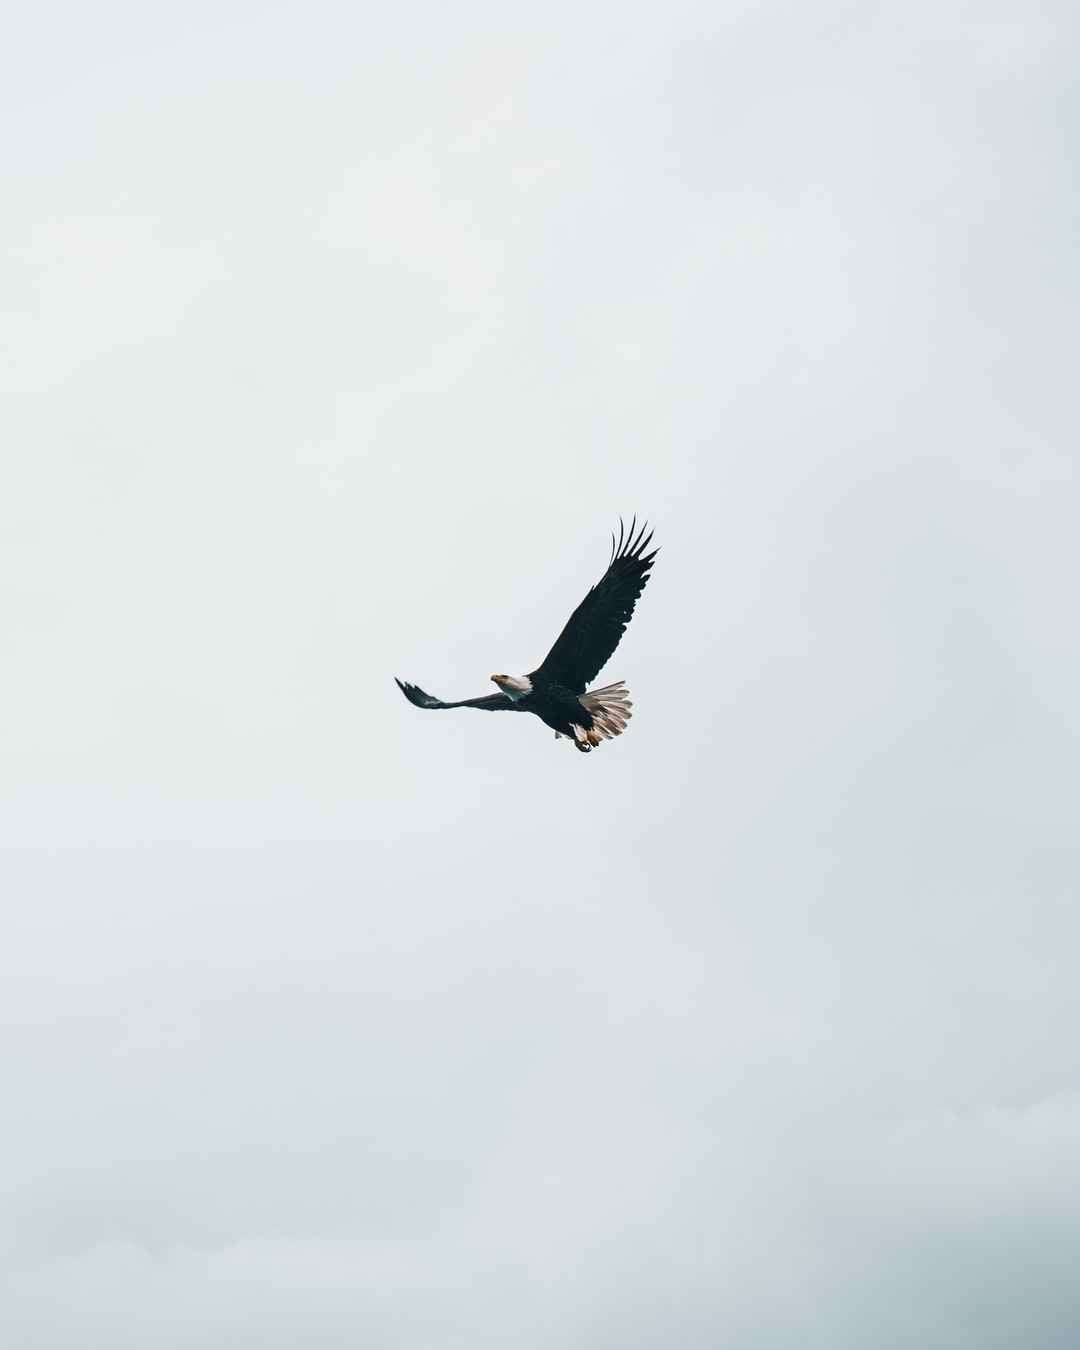 Eagle on the Way